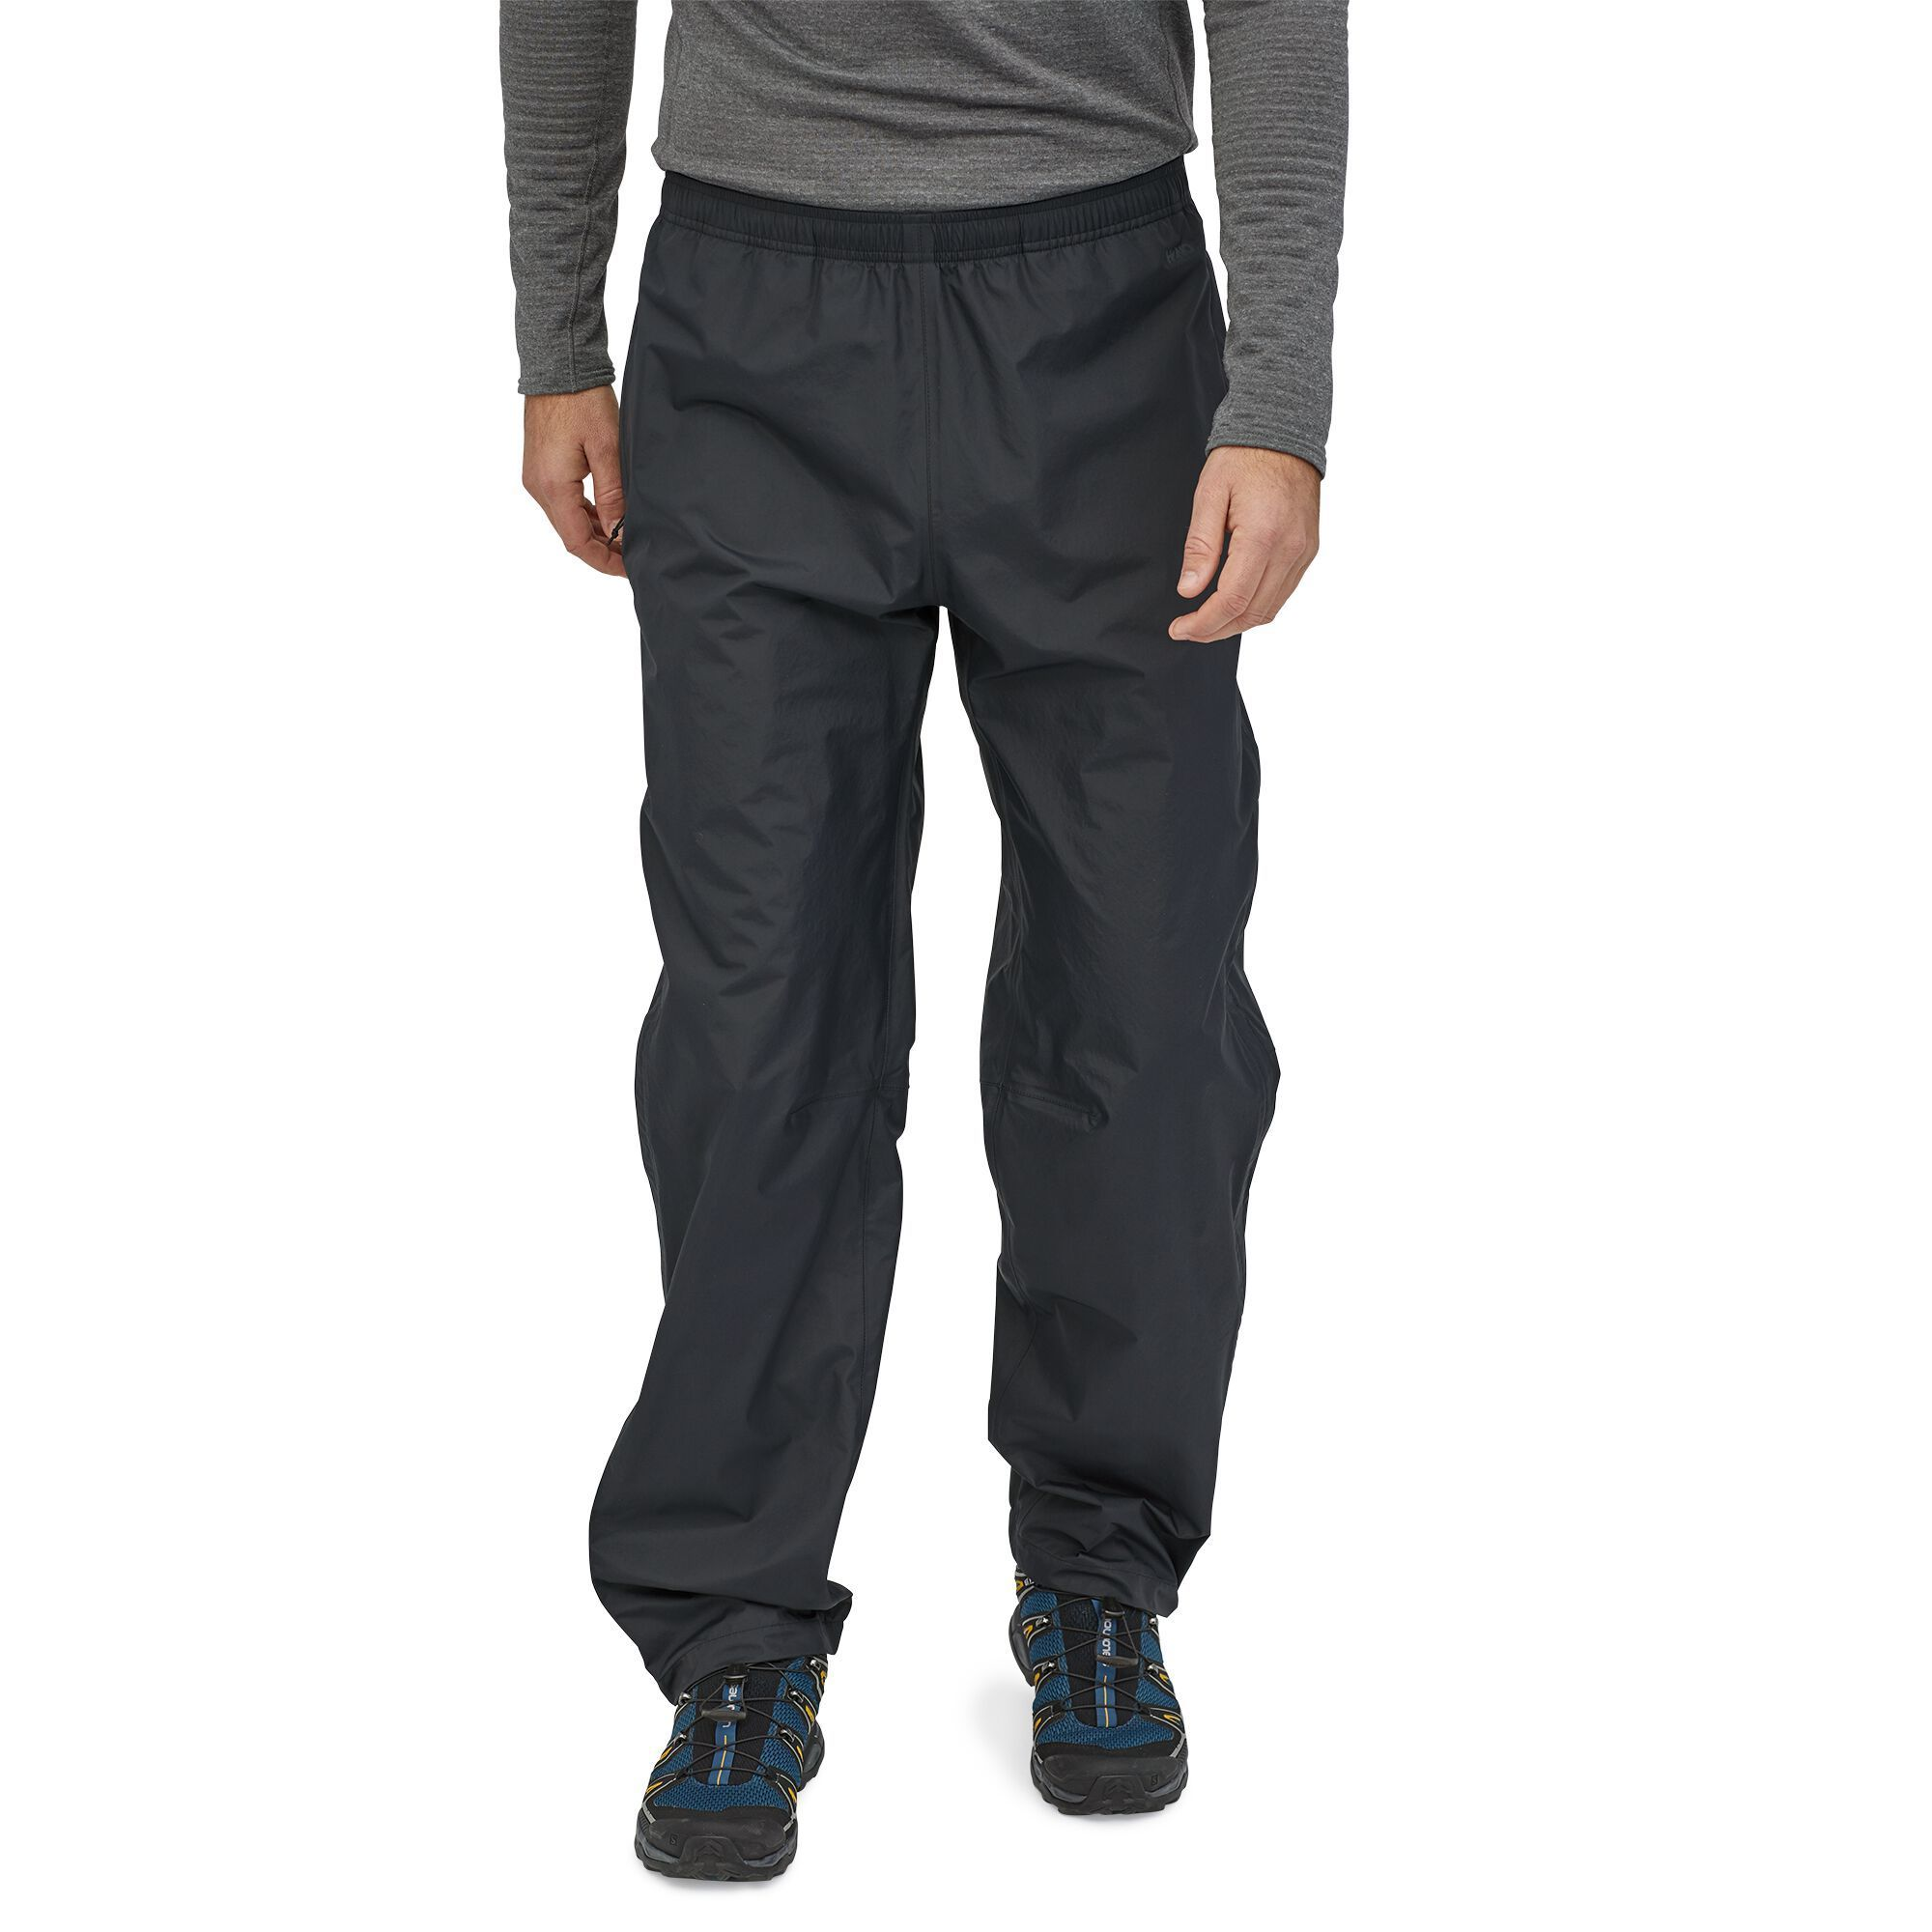 Patagonia - M's Torrentshell 3L Pants - 100% Recycled Nylon - Weekendbee - sustainable sportswear